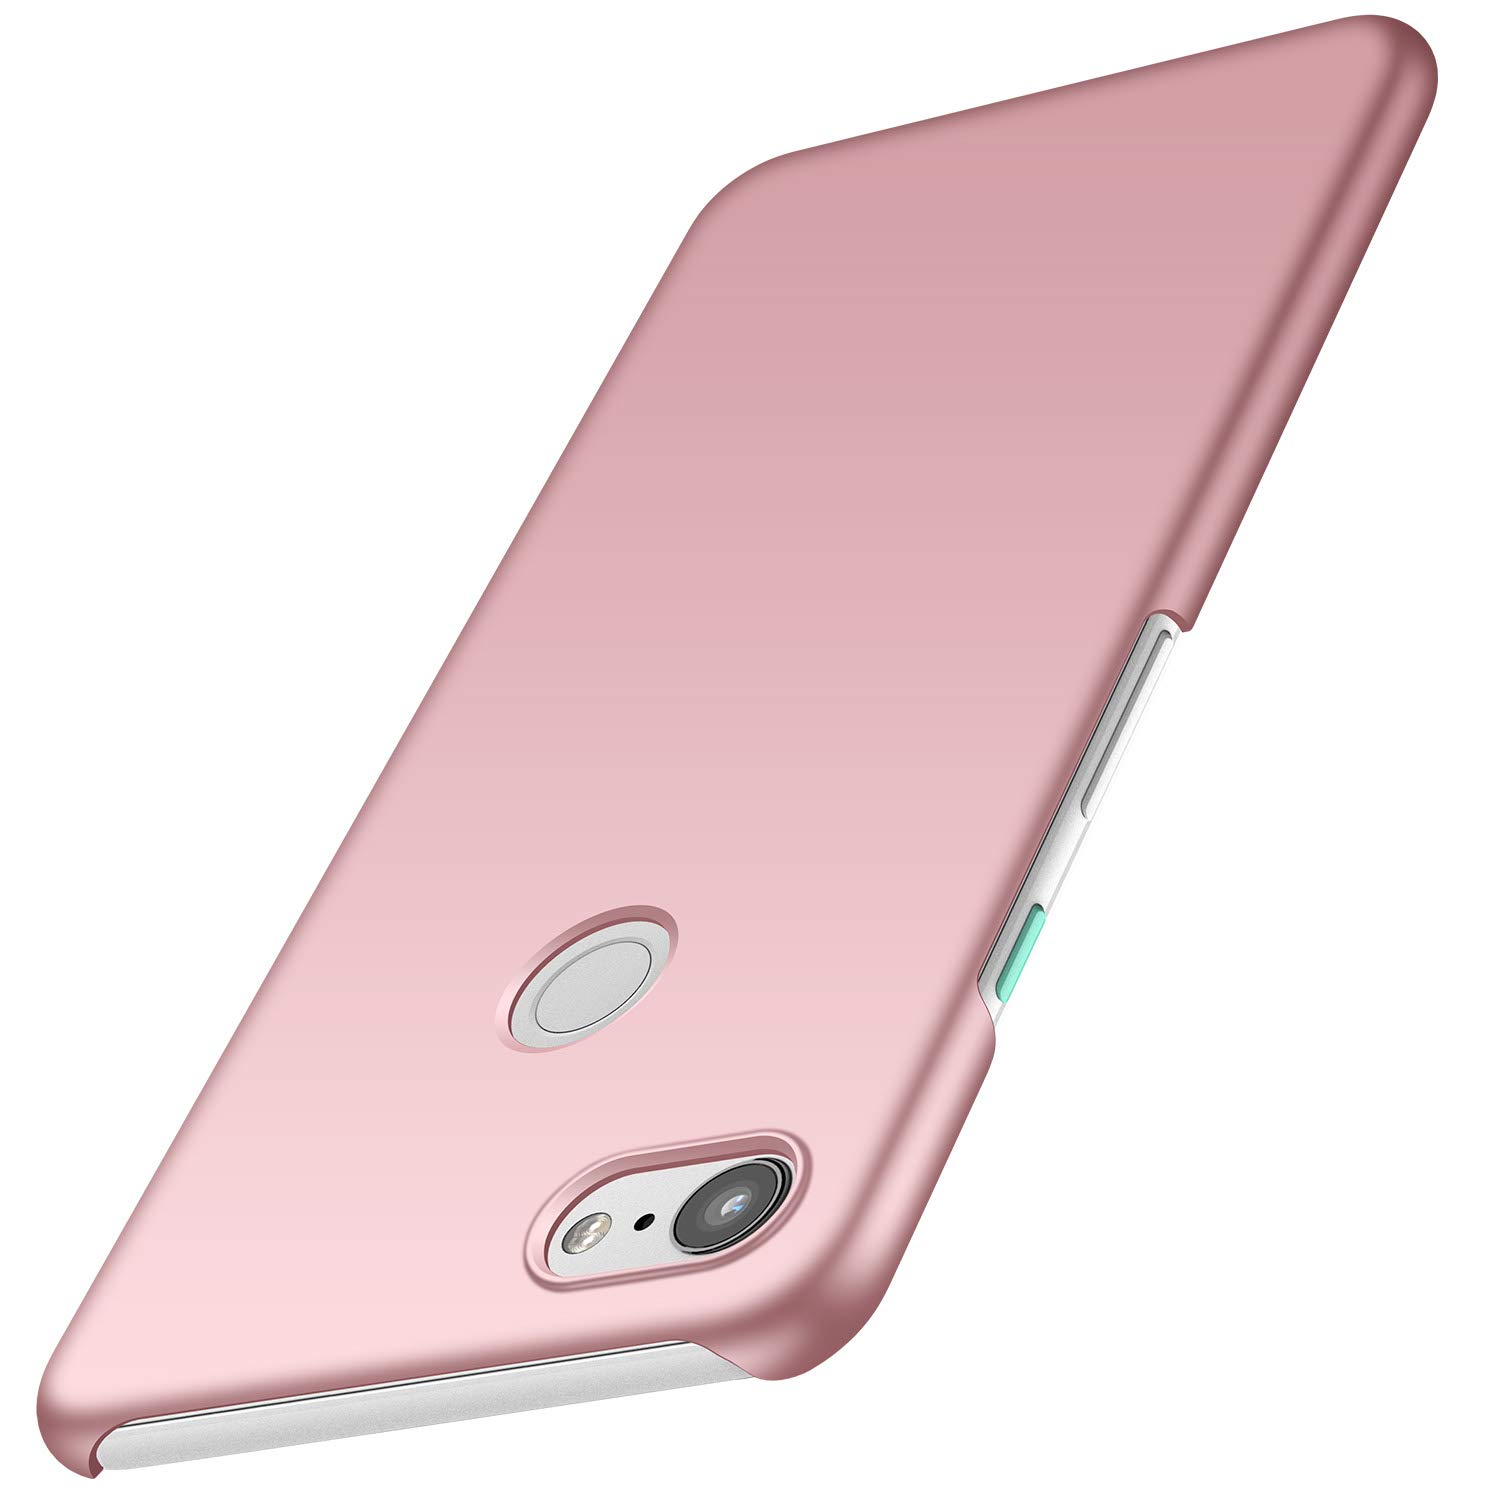 buy popular a8dc5 a57c5 anccer Colorful Series for Google Pixel 3 XL Case Ultra-Thin Fit Premium PC  Material Slim Cover for Google Pixel 3 XL (Rose Gold)